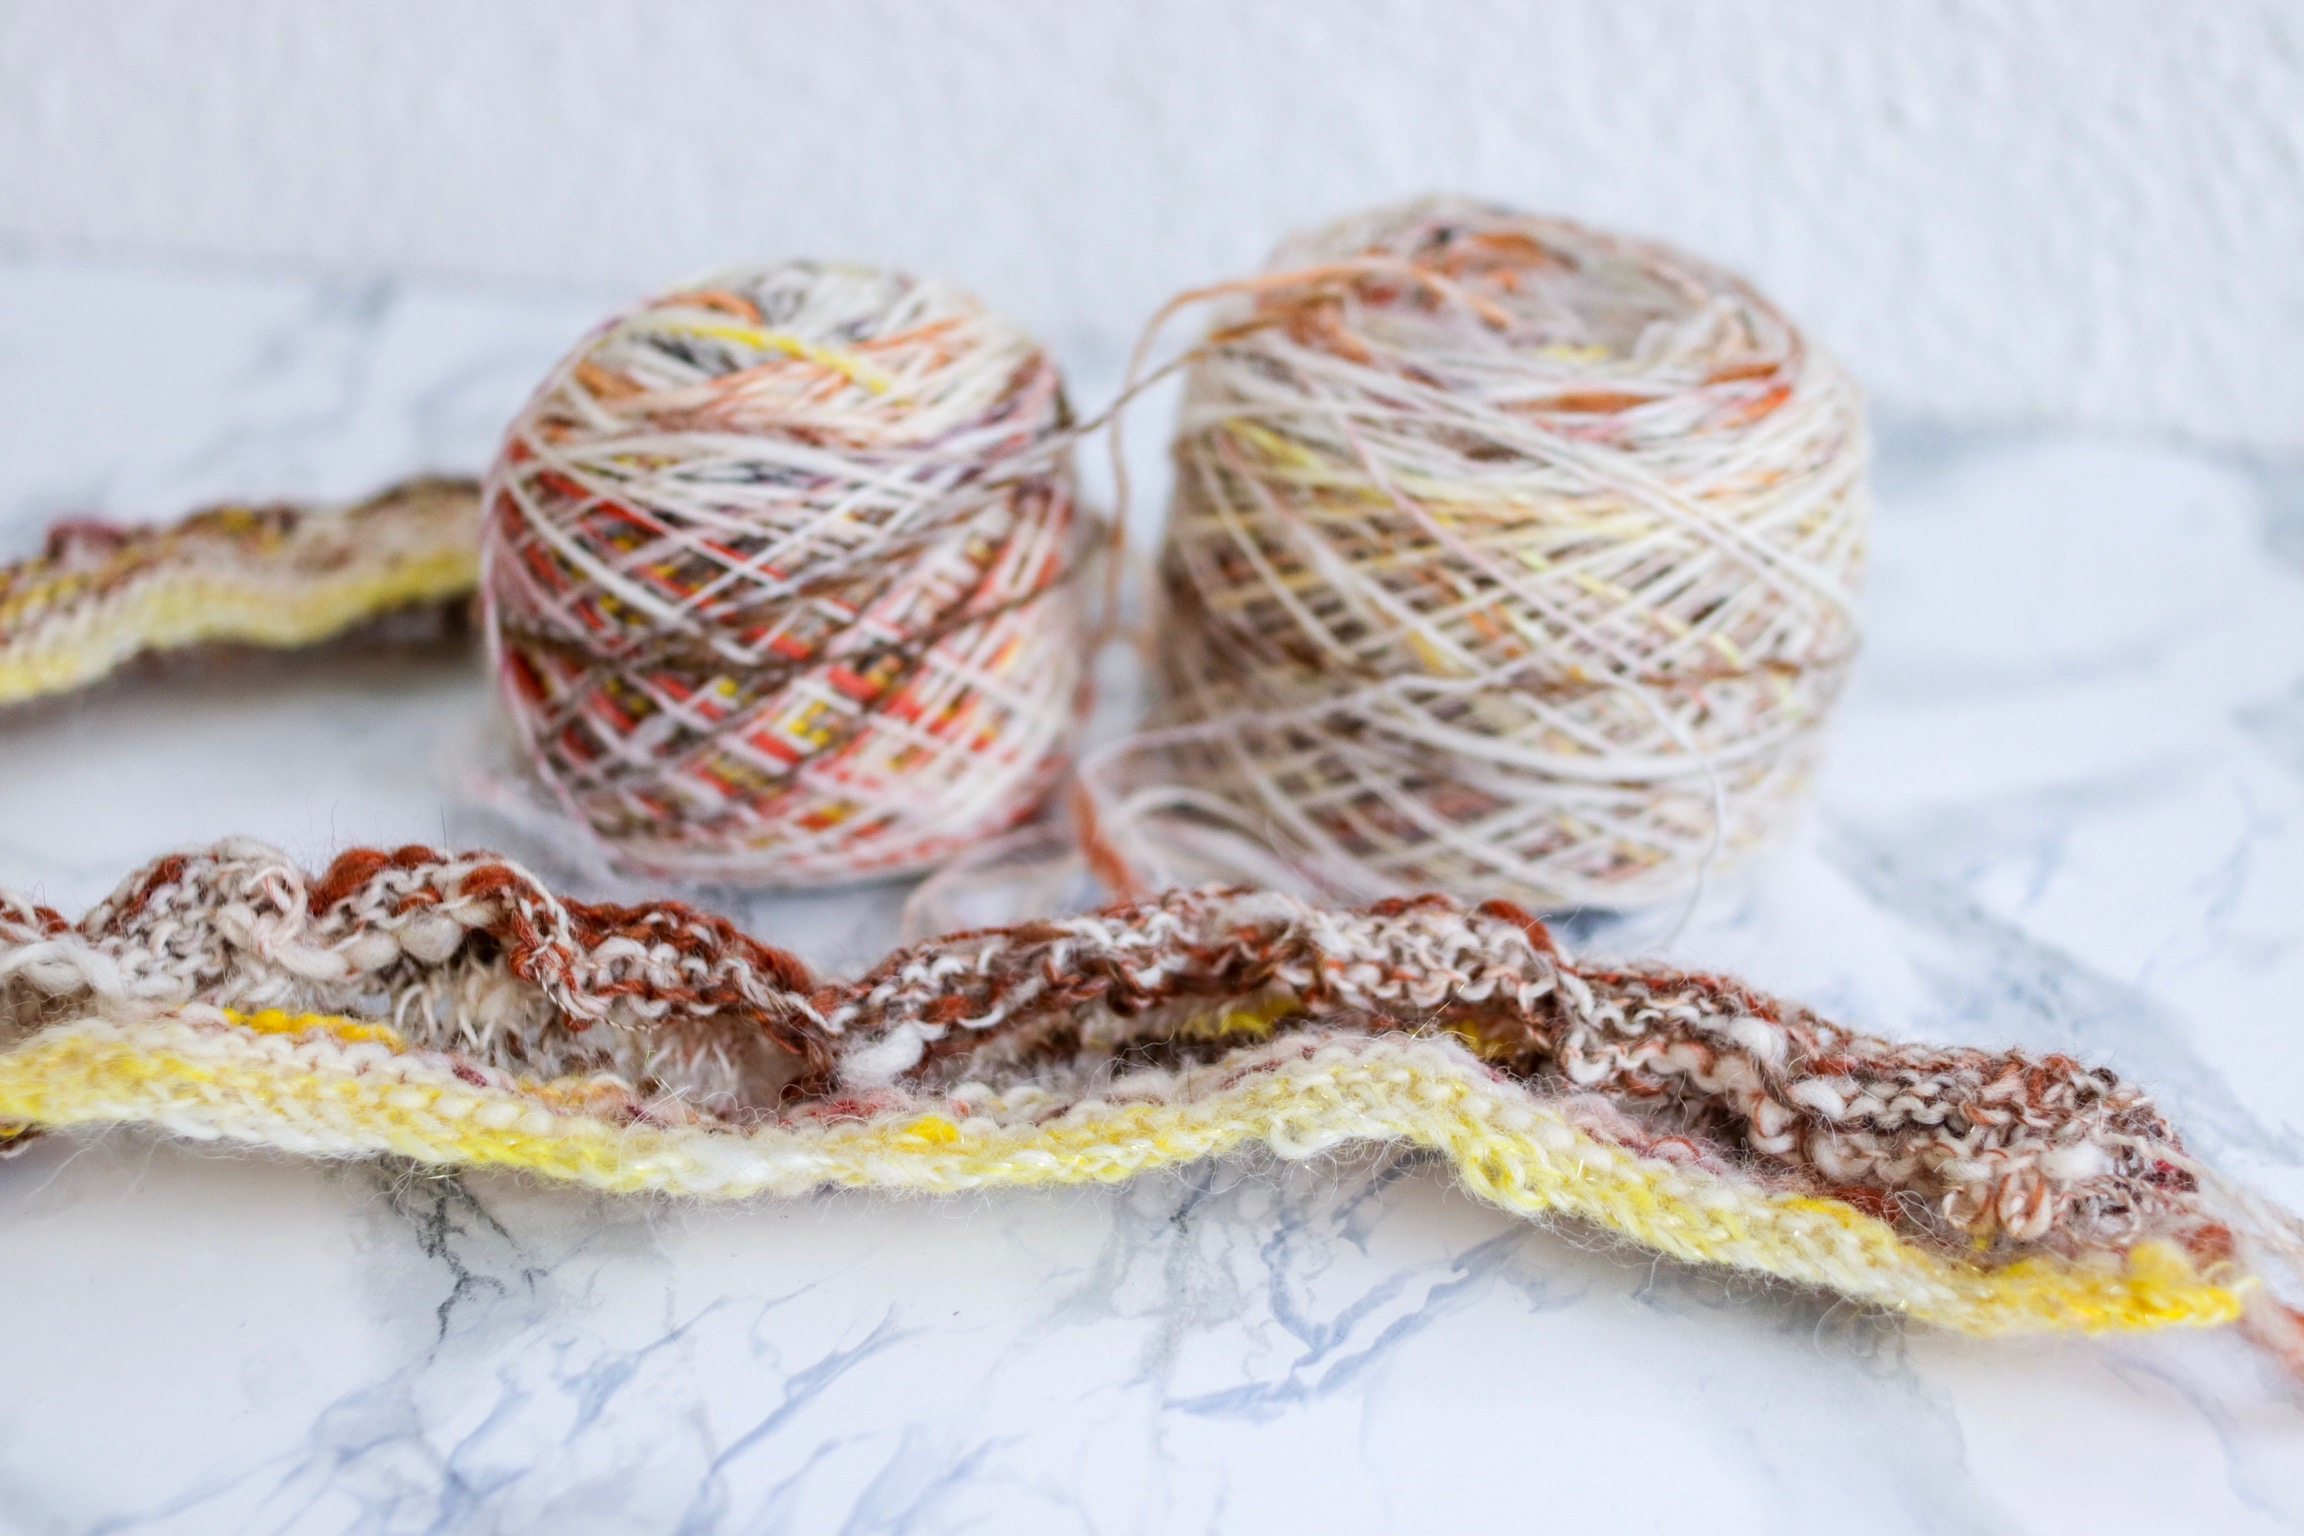 Handling highly variegated yarns and how frogging is part of the creative process. Try, learn, improve.